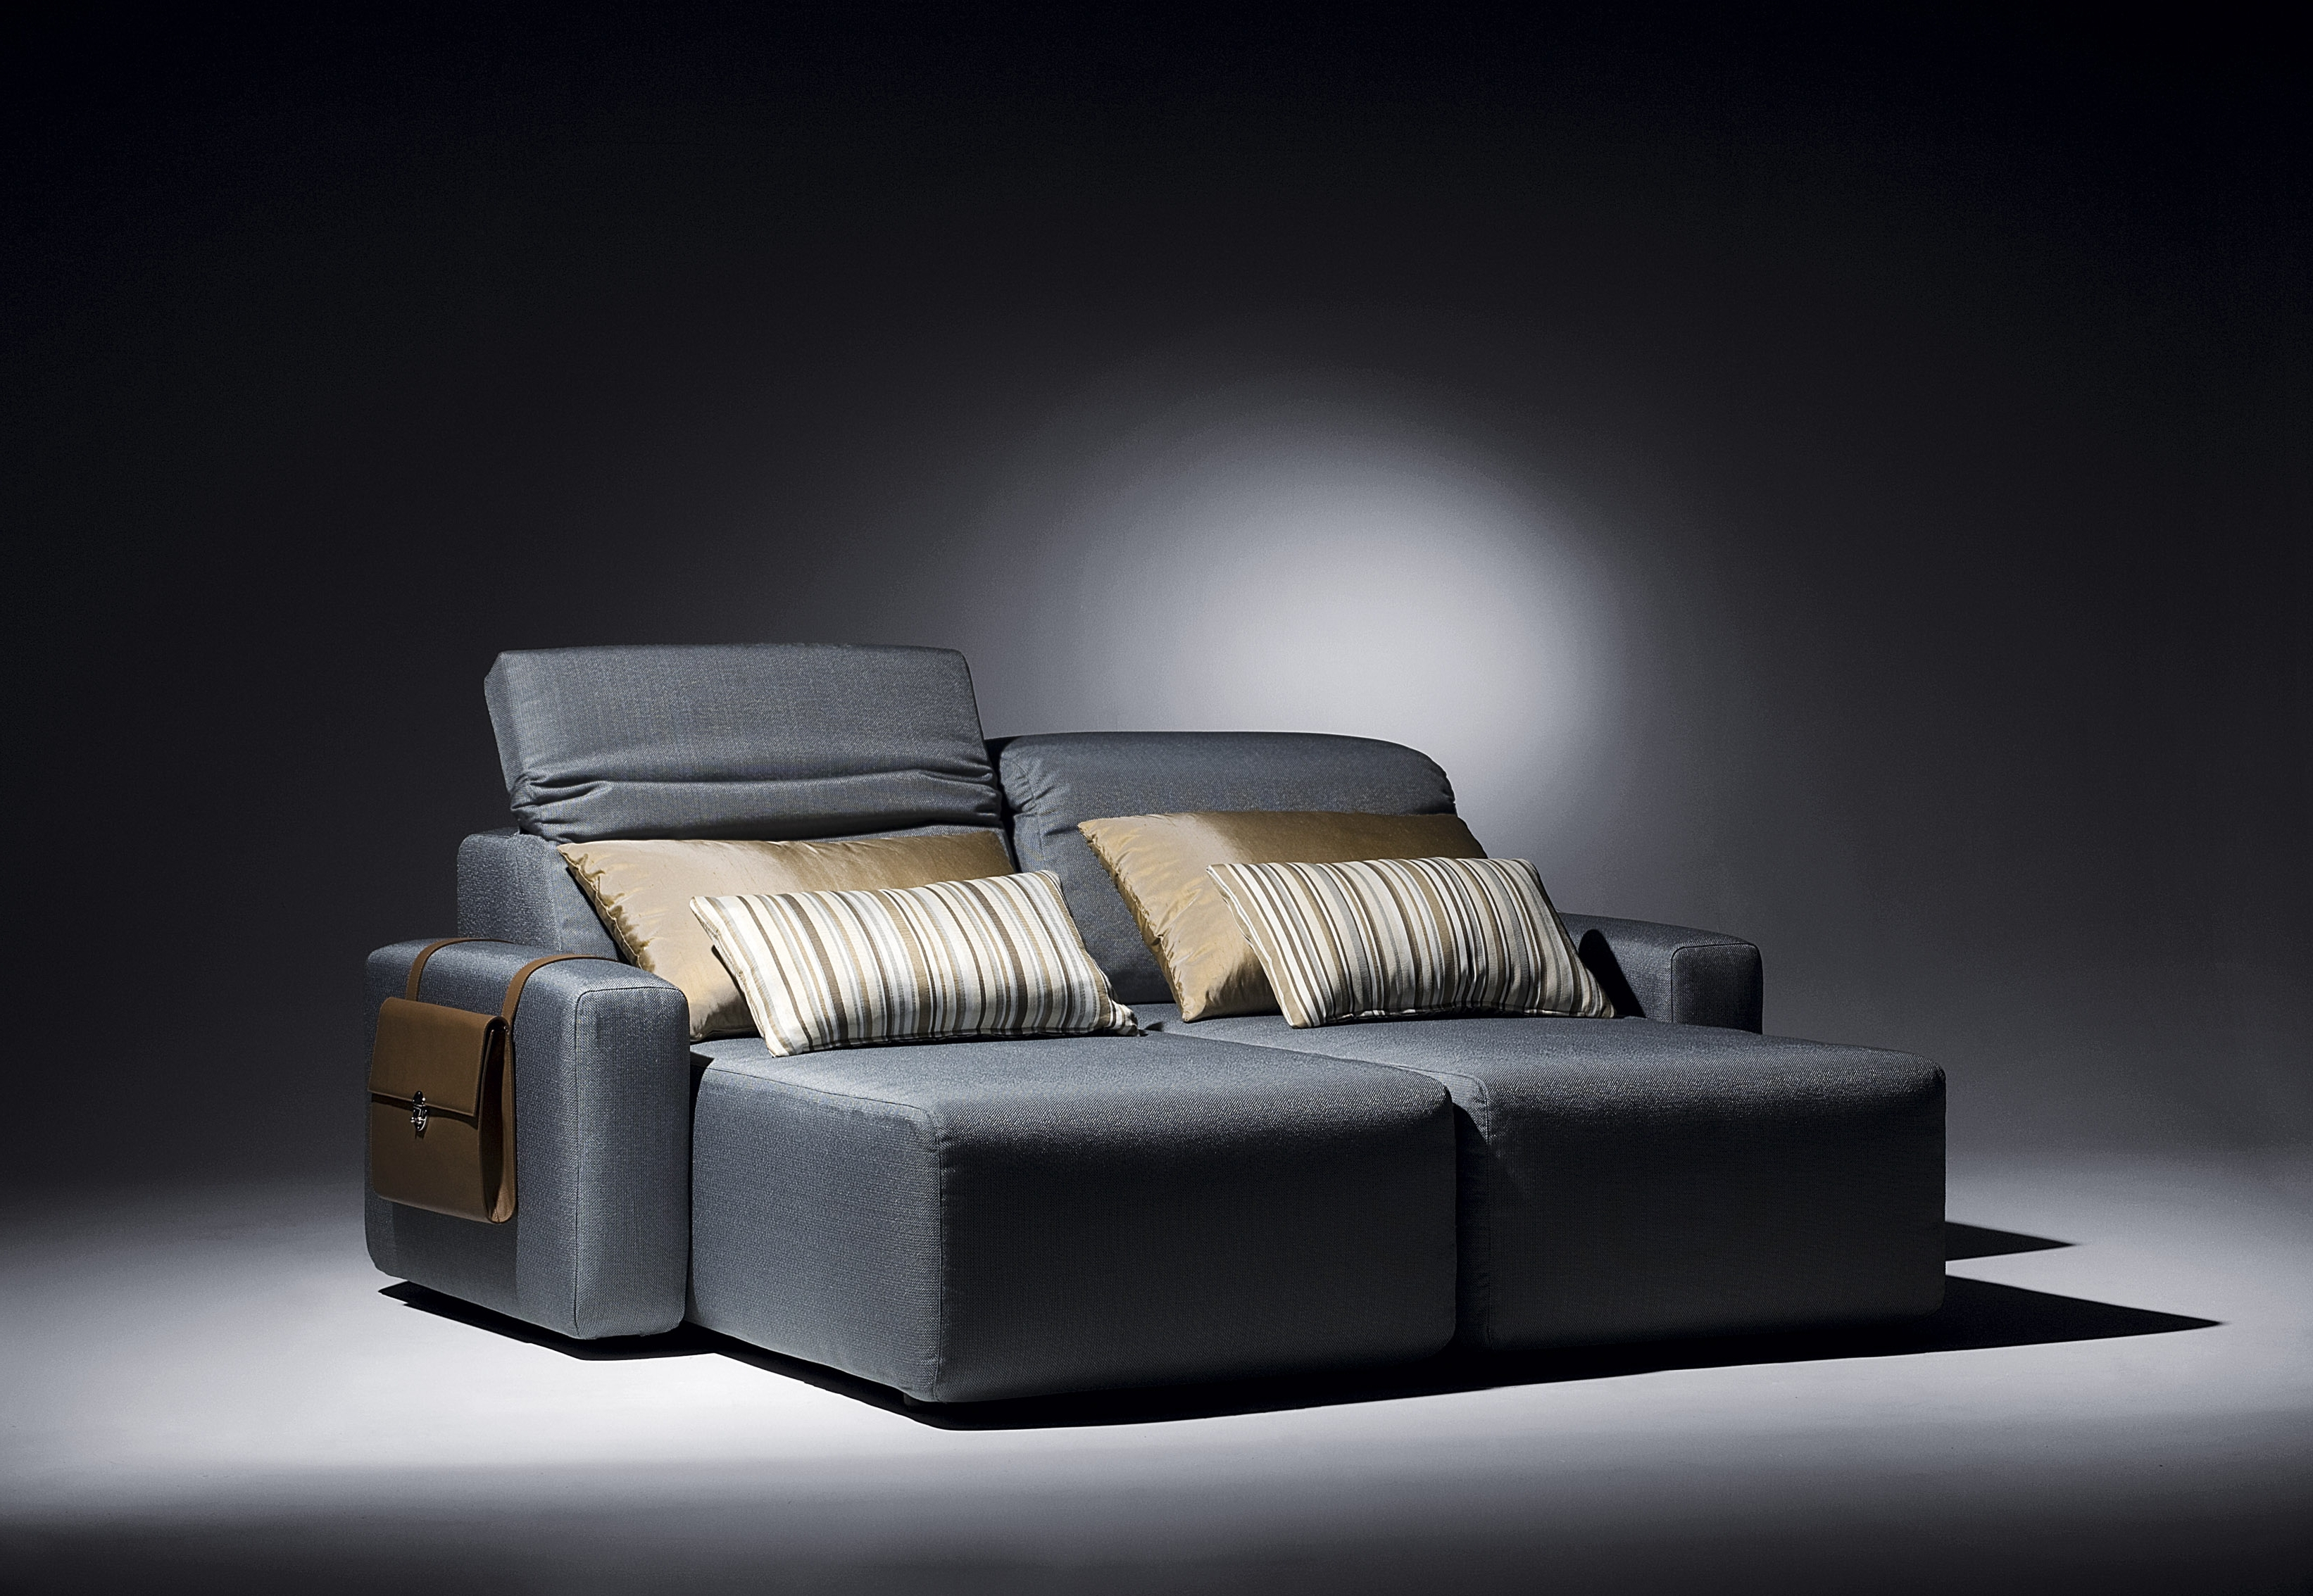 Teenage Chaise Lounges Pertaining To Famous Teenage Chaise Lounge (View 11 of 15)